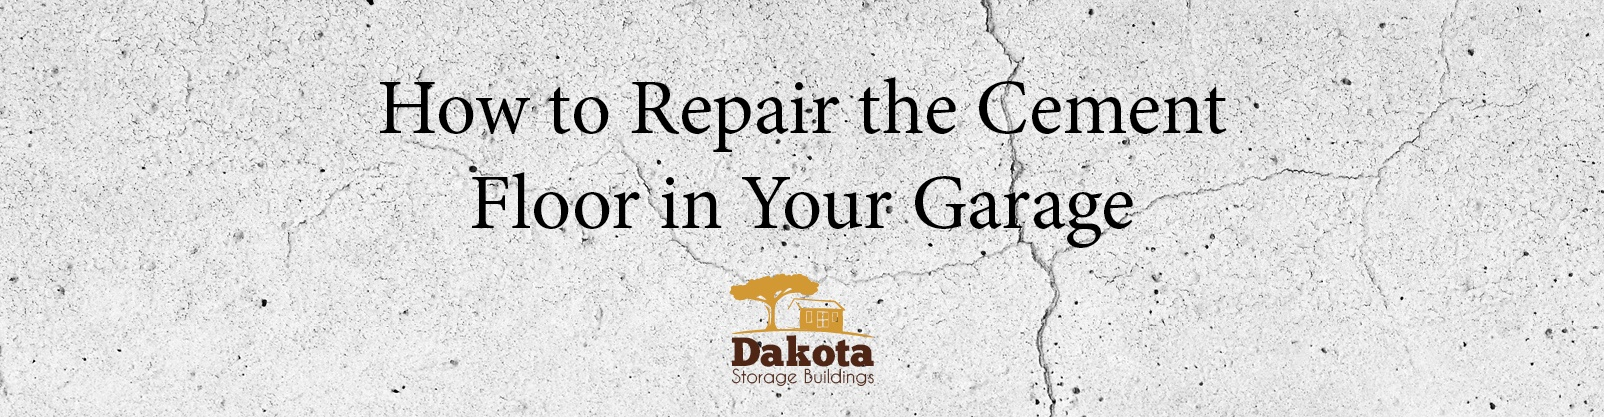 How to Repair the Cement Floor in Your Garage